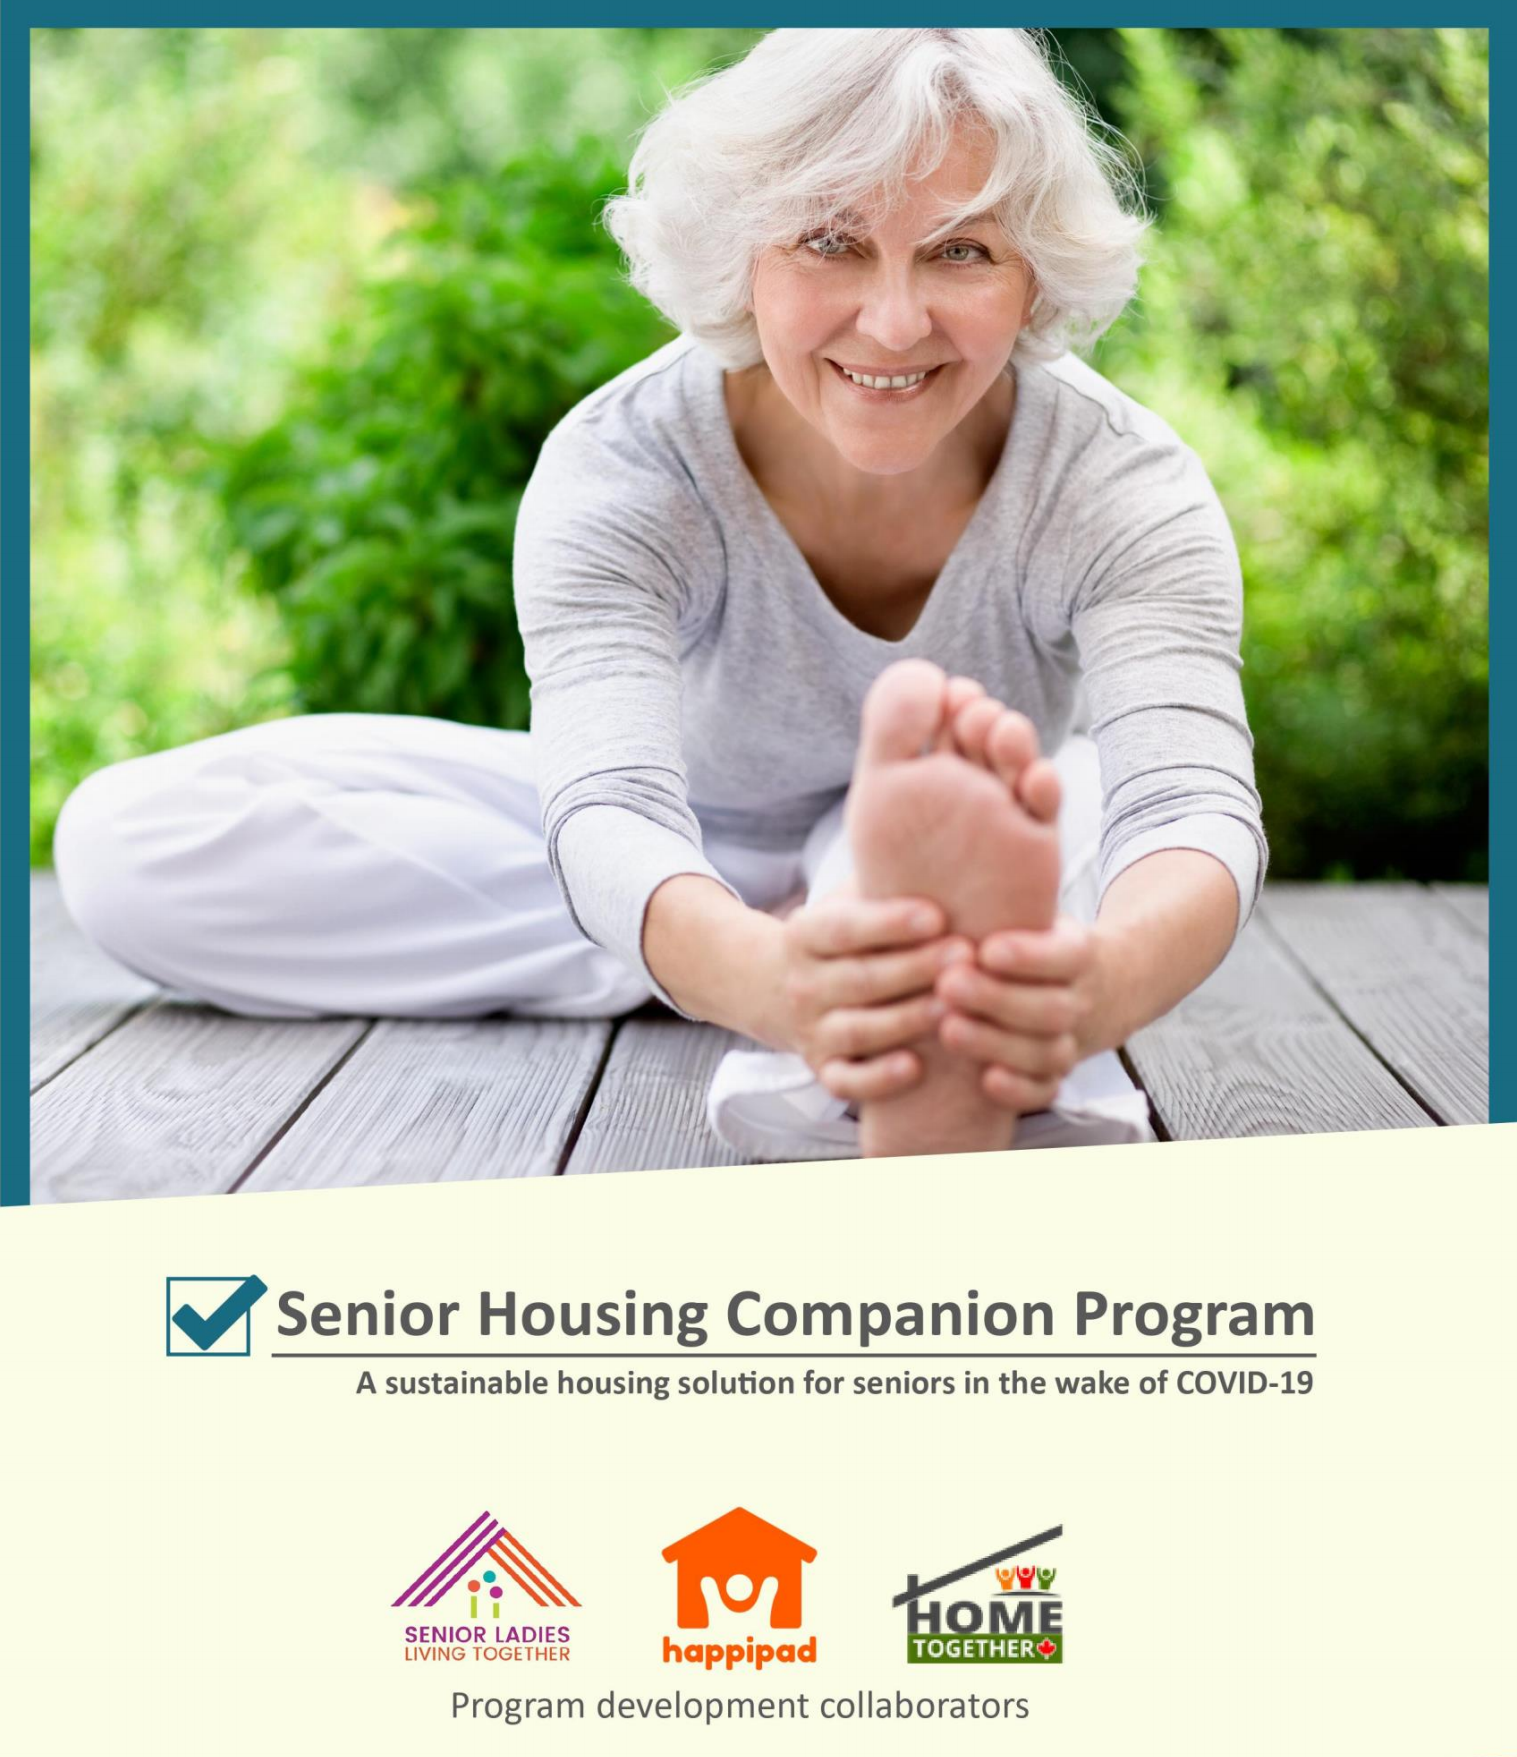 housing companion program